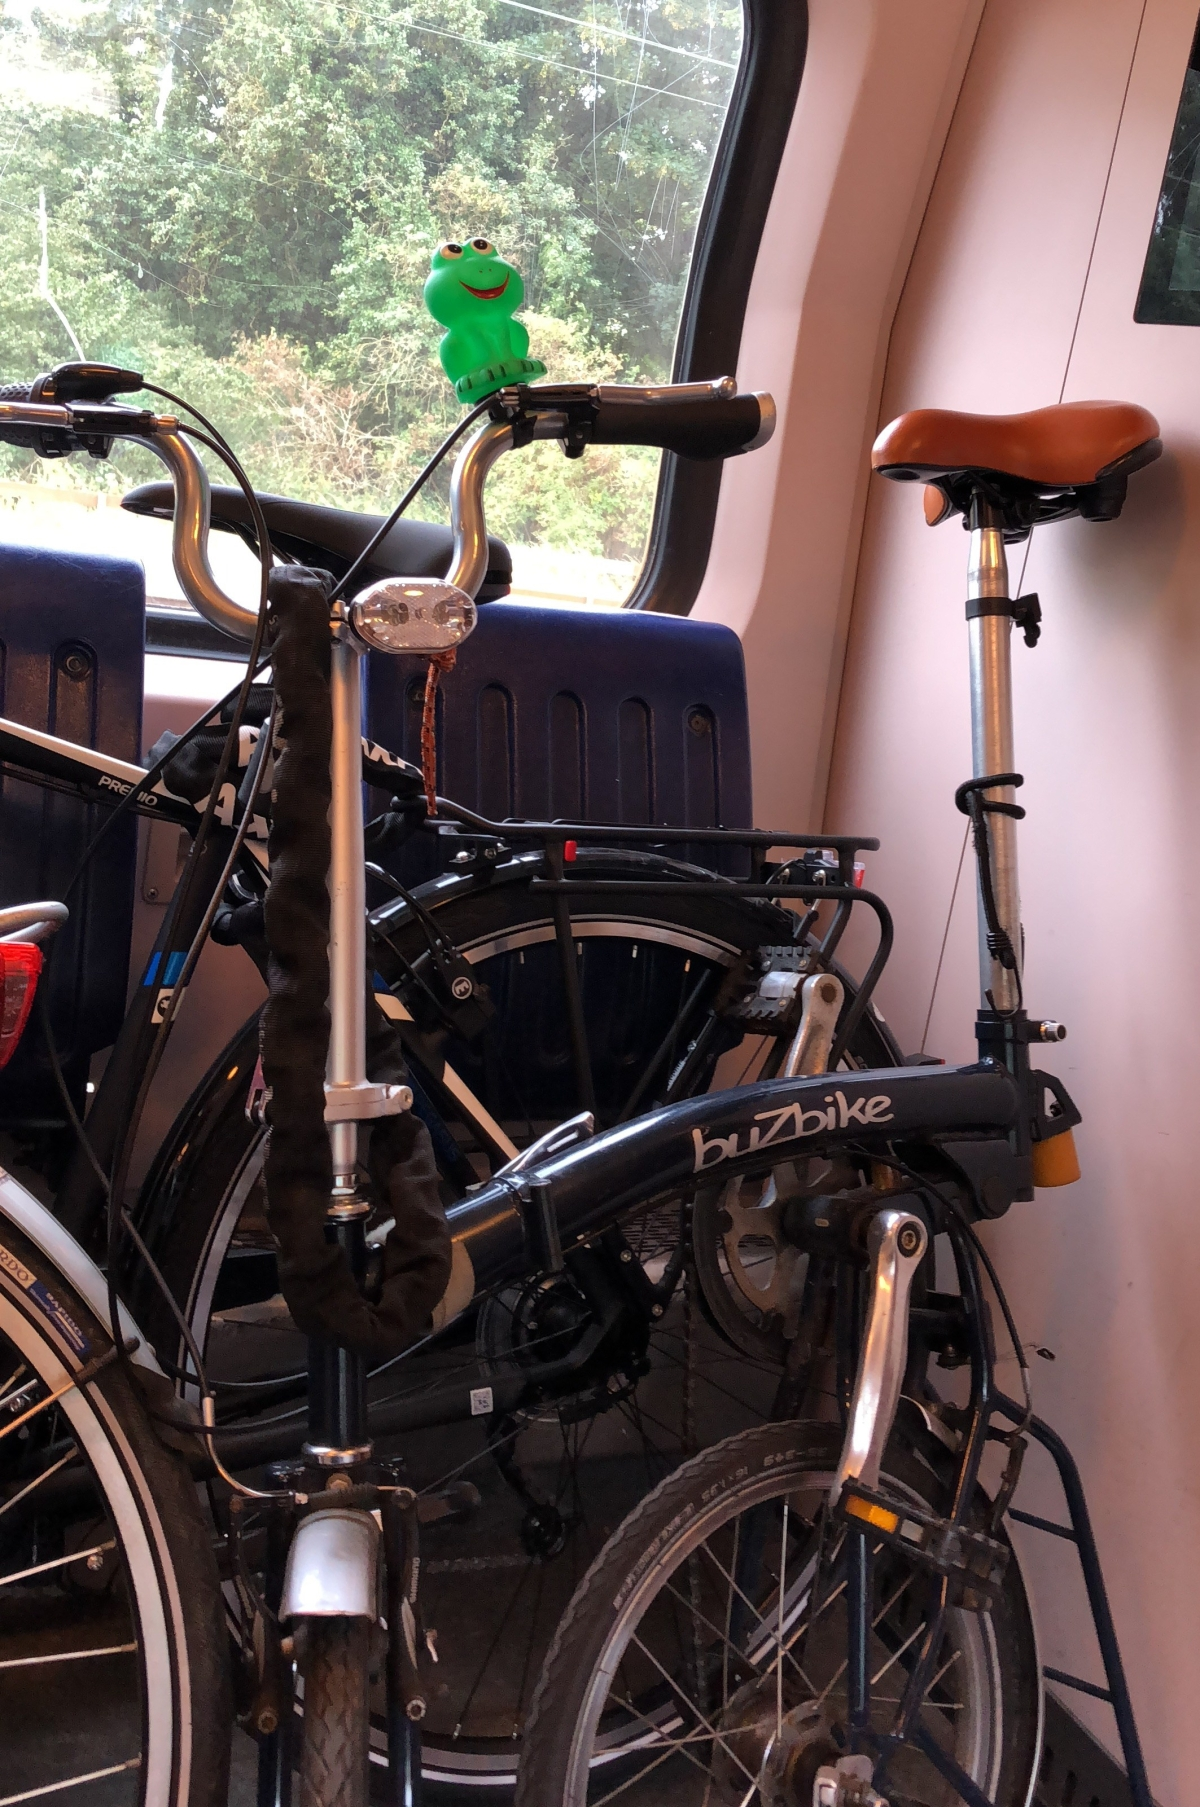 Several bikes on the train